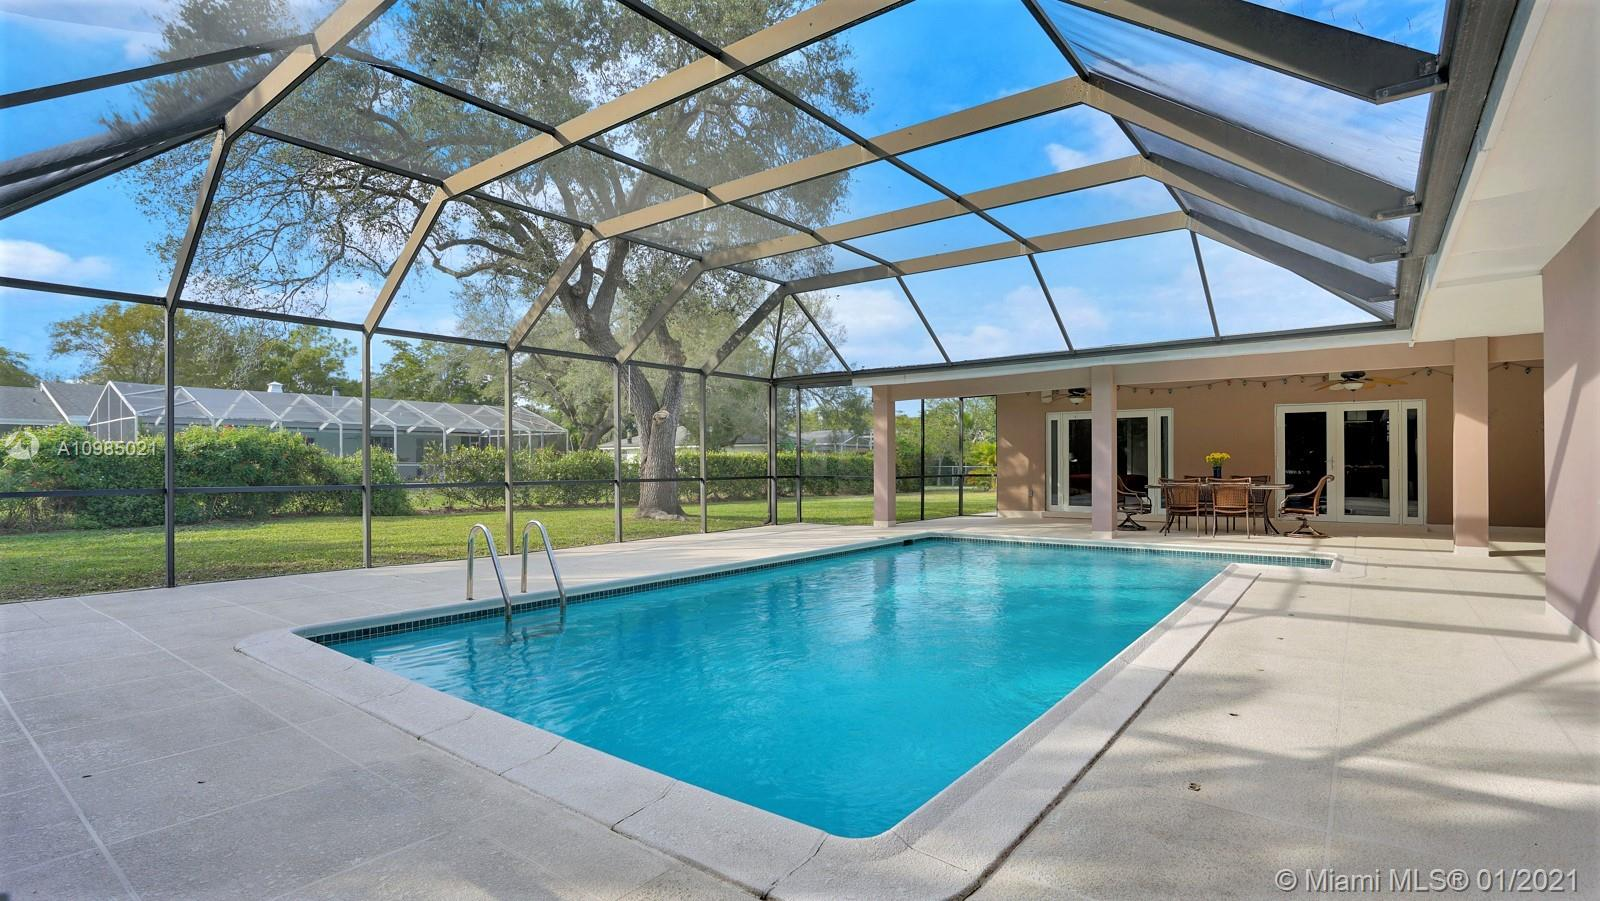 14720 SW 81st Ave, Palmetto Bay, Florida 33158, 3 Bedrooms Bedrooms, ,2 BathroomsBathrooms,Residential,For Sale,14720 SW 81st Ave,A10985021